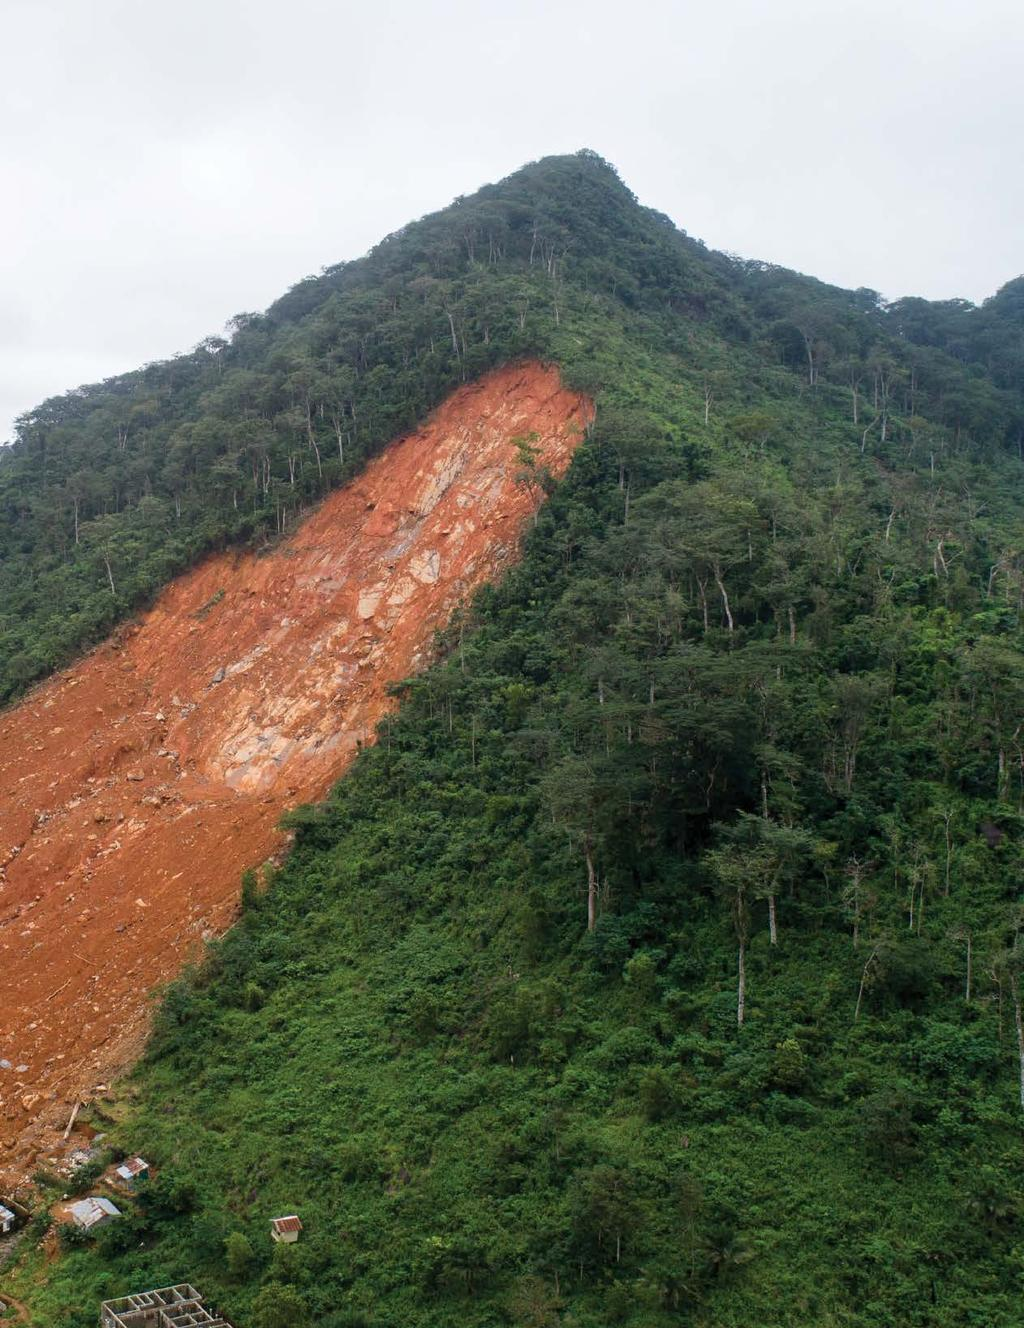 In spring and summer of 2017, torrential rainfall triggered a series of landslides culminating in two catastrophic disasters: one in Mocoa, an inland city in southwestern Colombia, and another